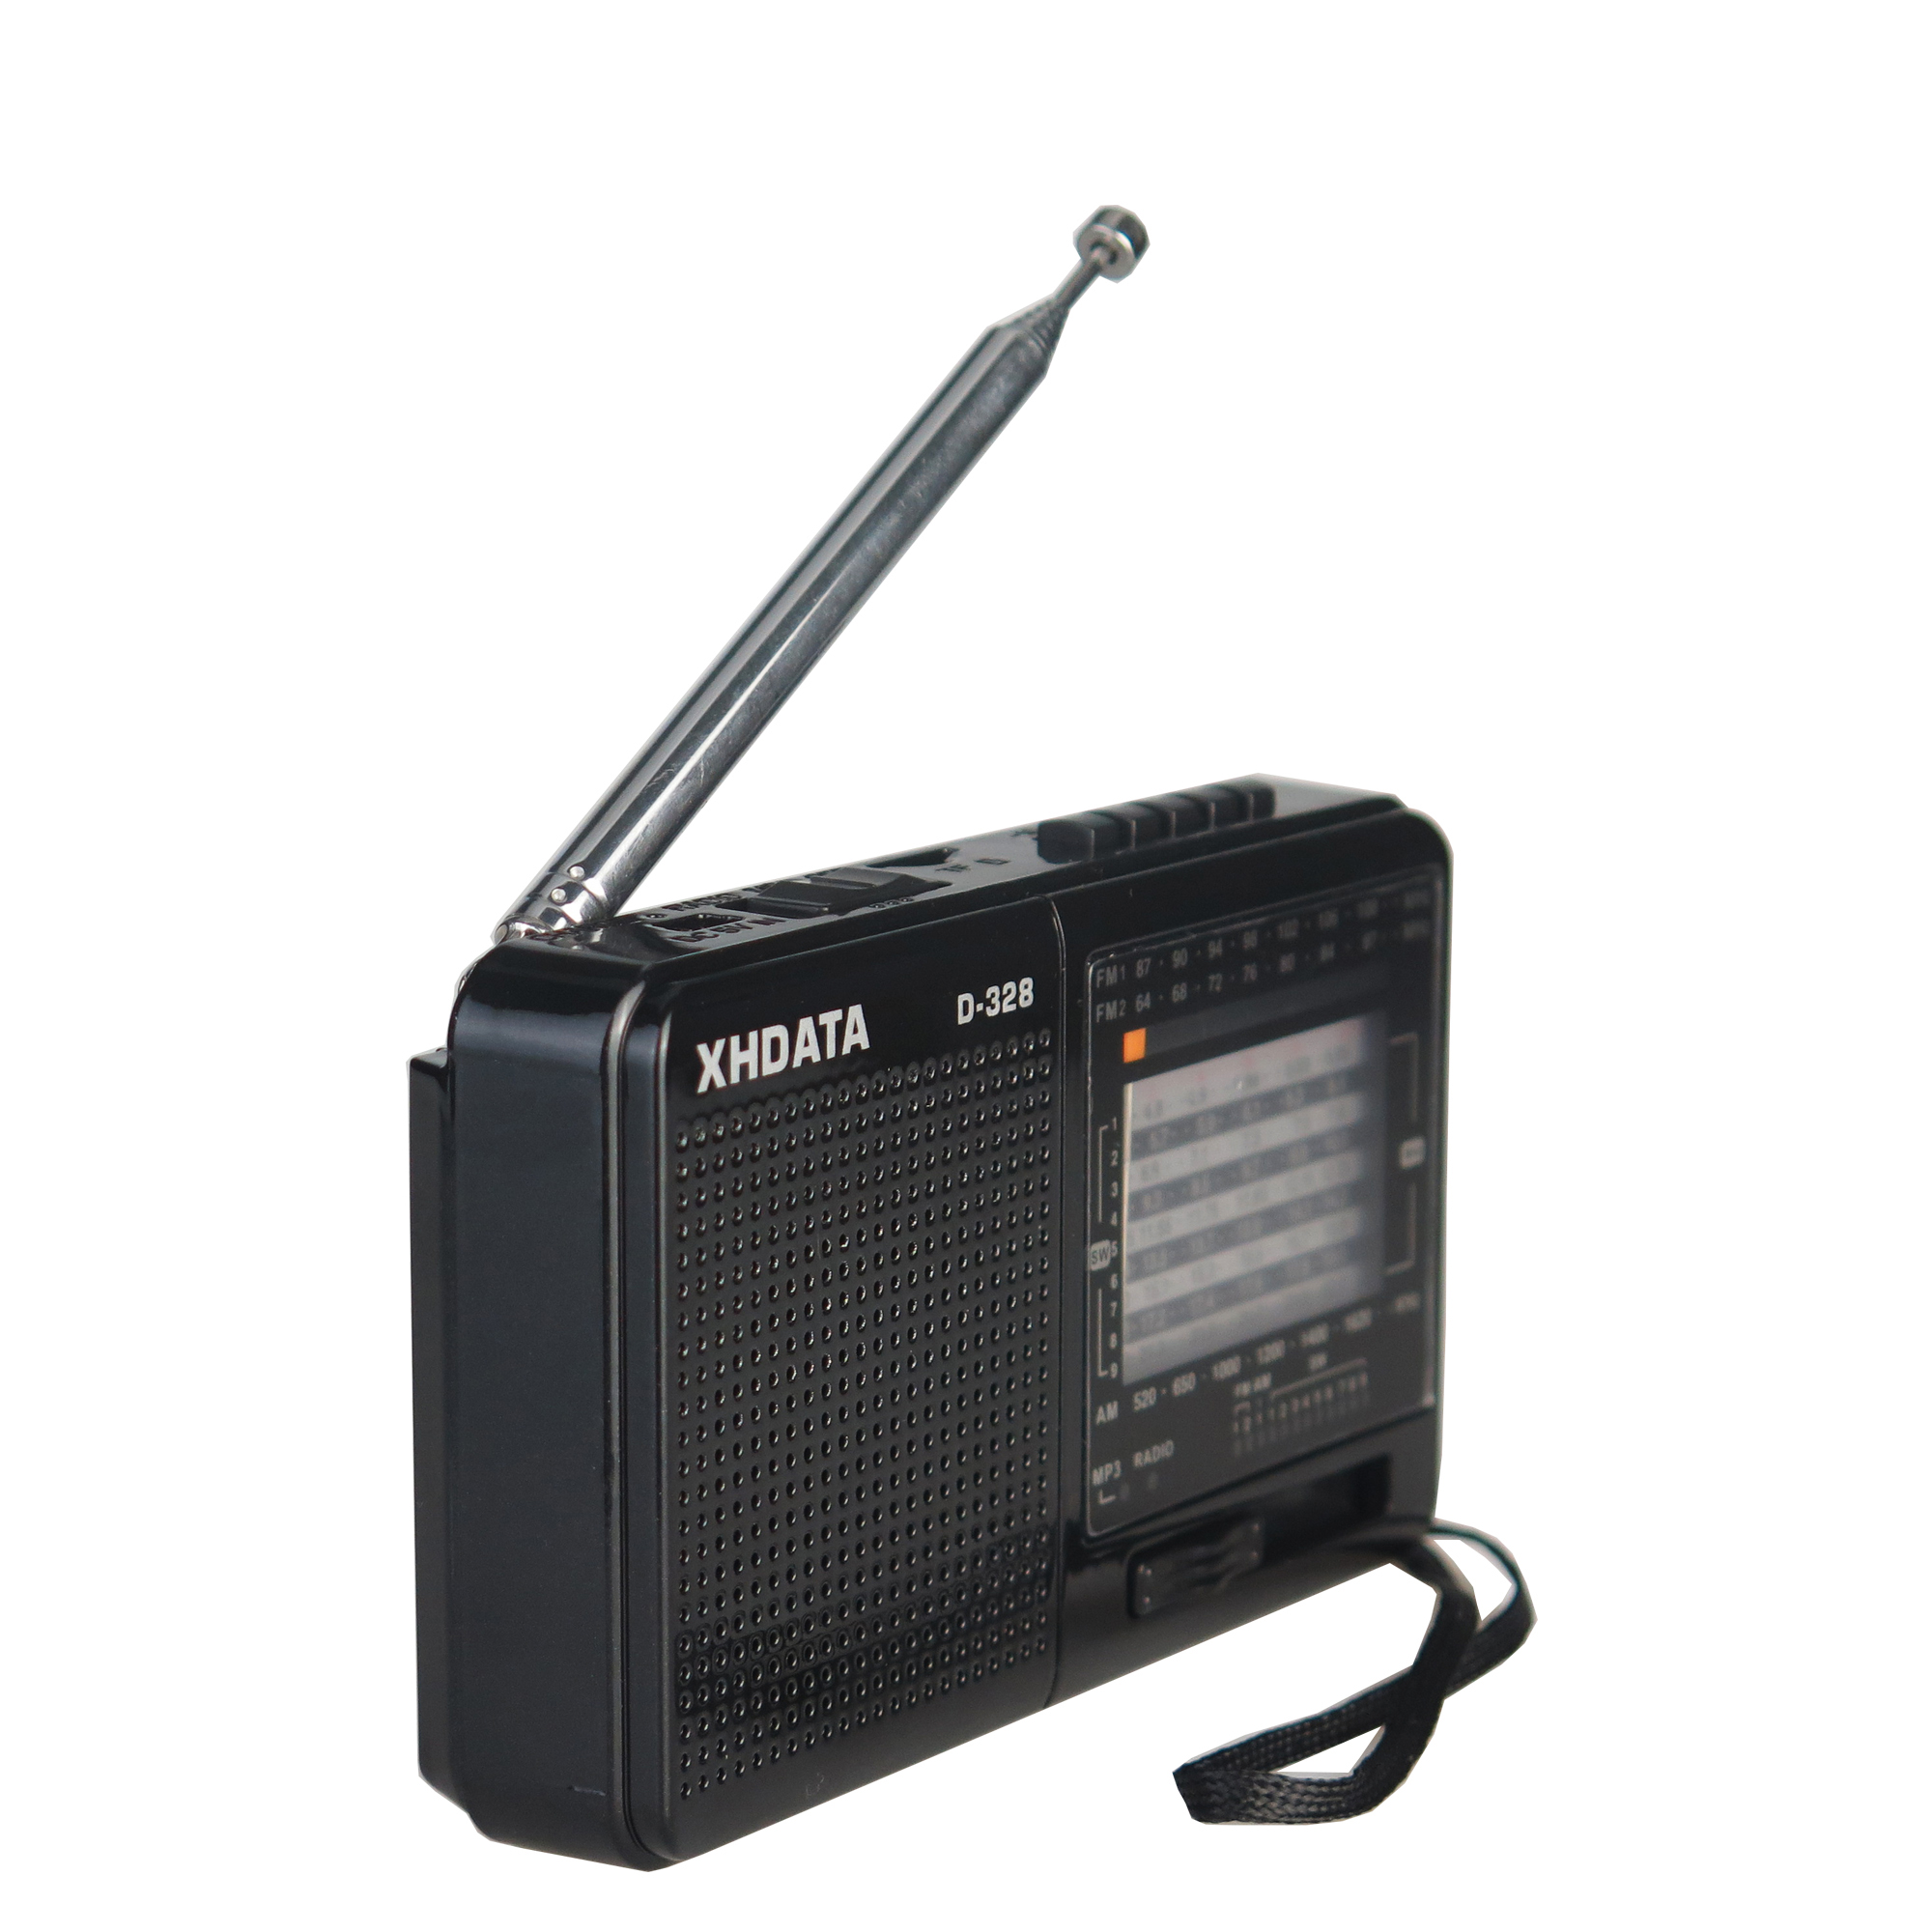 XHDATA D-328 Portable Radio FM AM SW MP3 Player Rechargerable With TF Card Jack